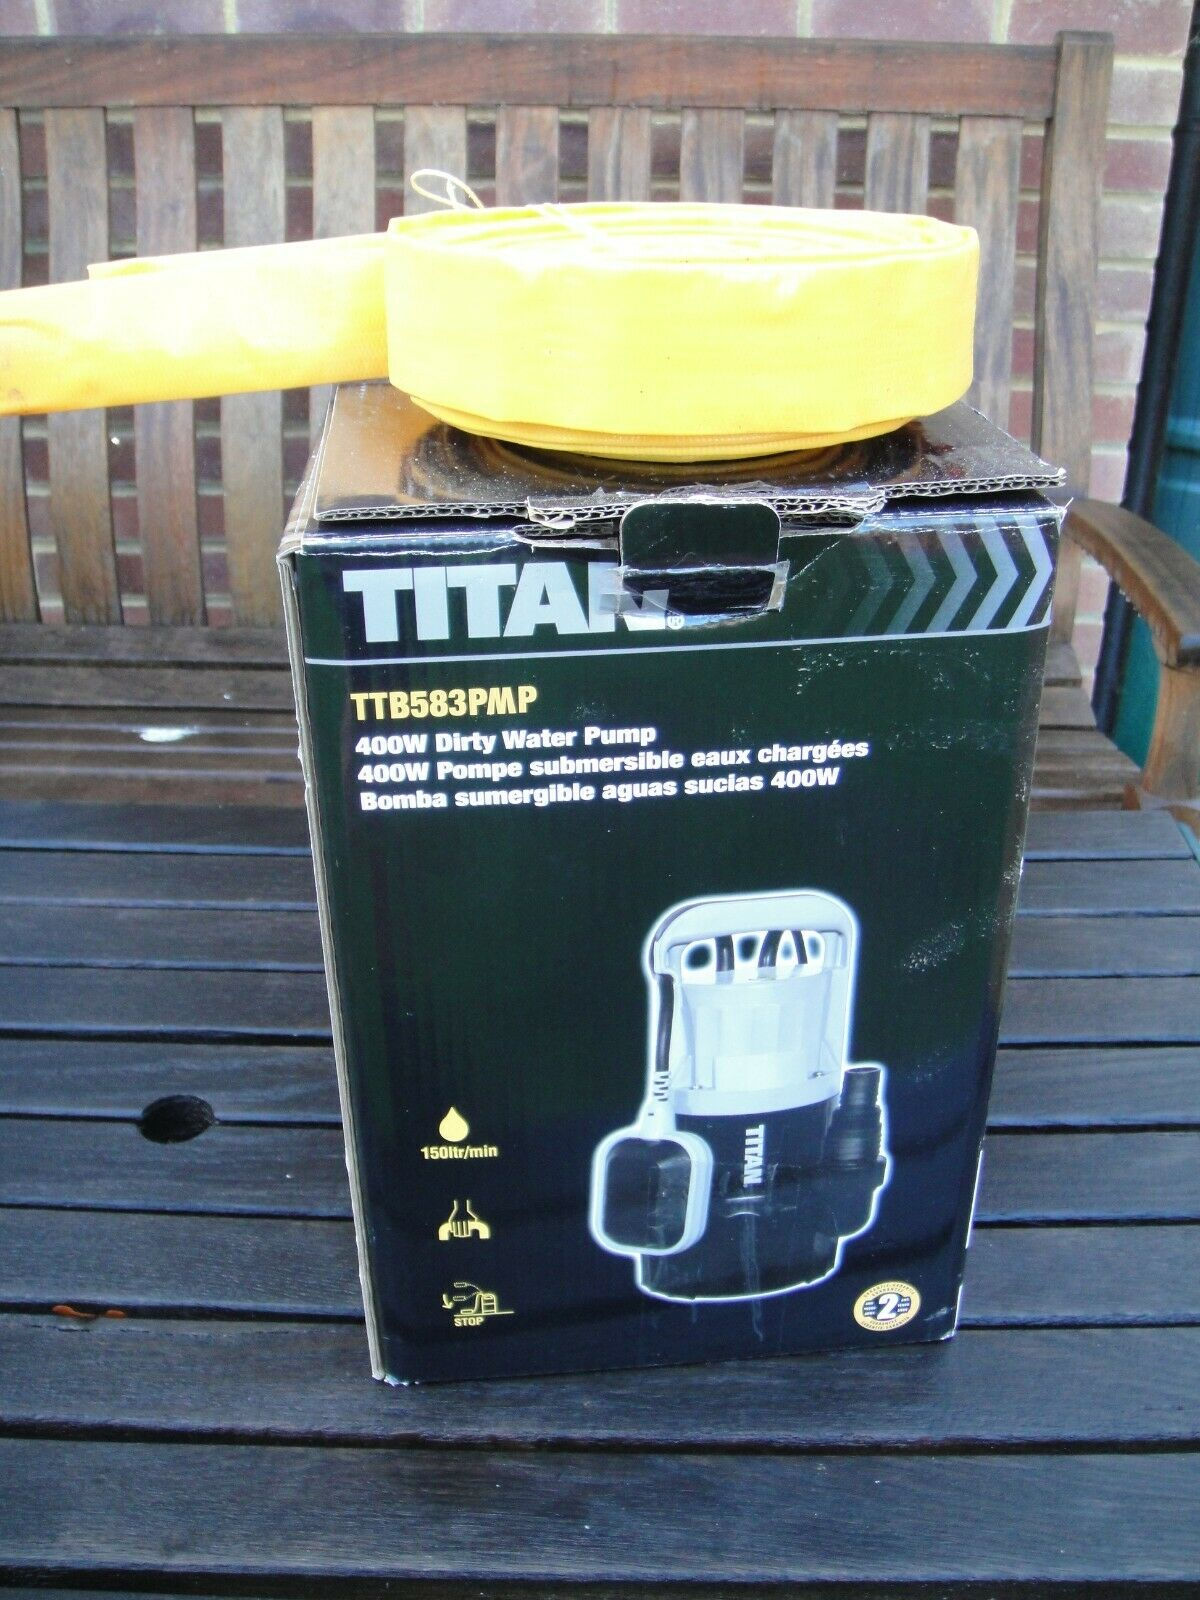 Titan 400w Automatic Submersible Water Pump + 10m x 32mm Yellow Hose